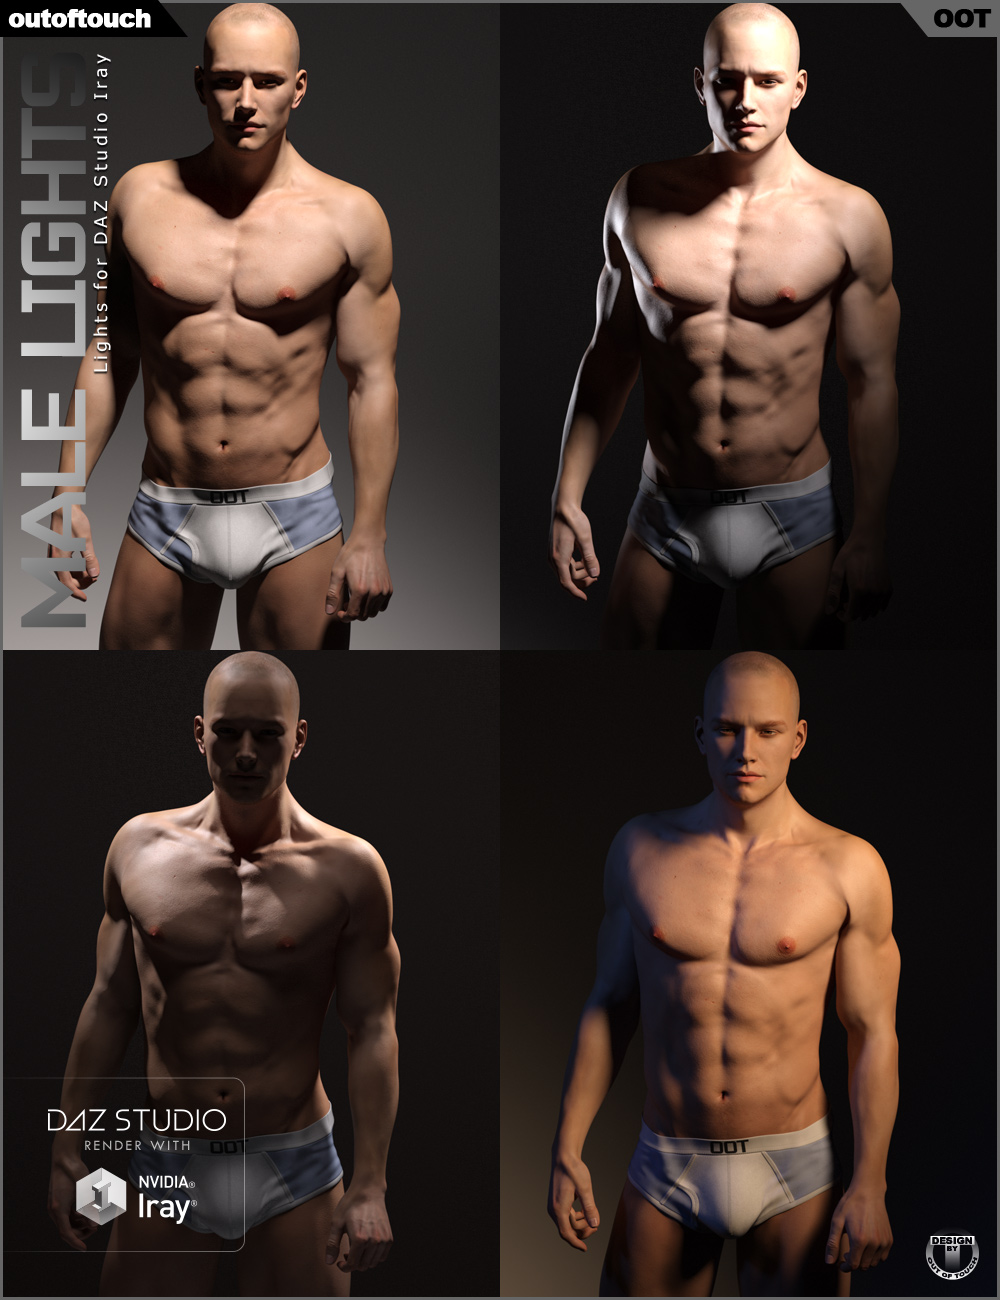 OOT Male Iray Lights by: outoftouch, 3D Models by Daz 3D